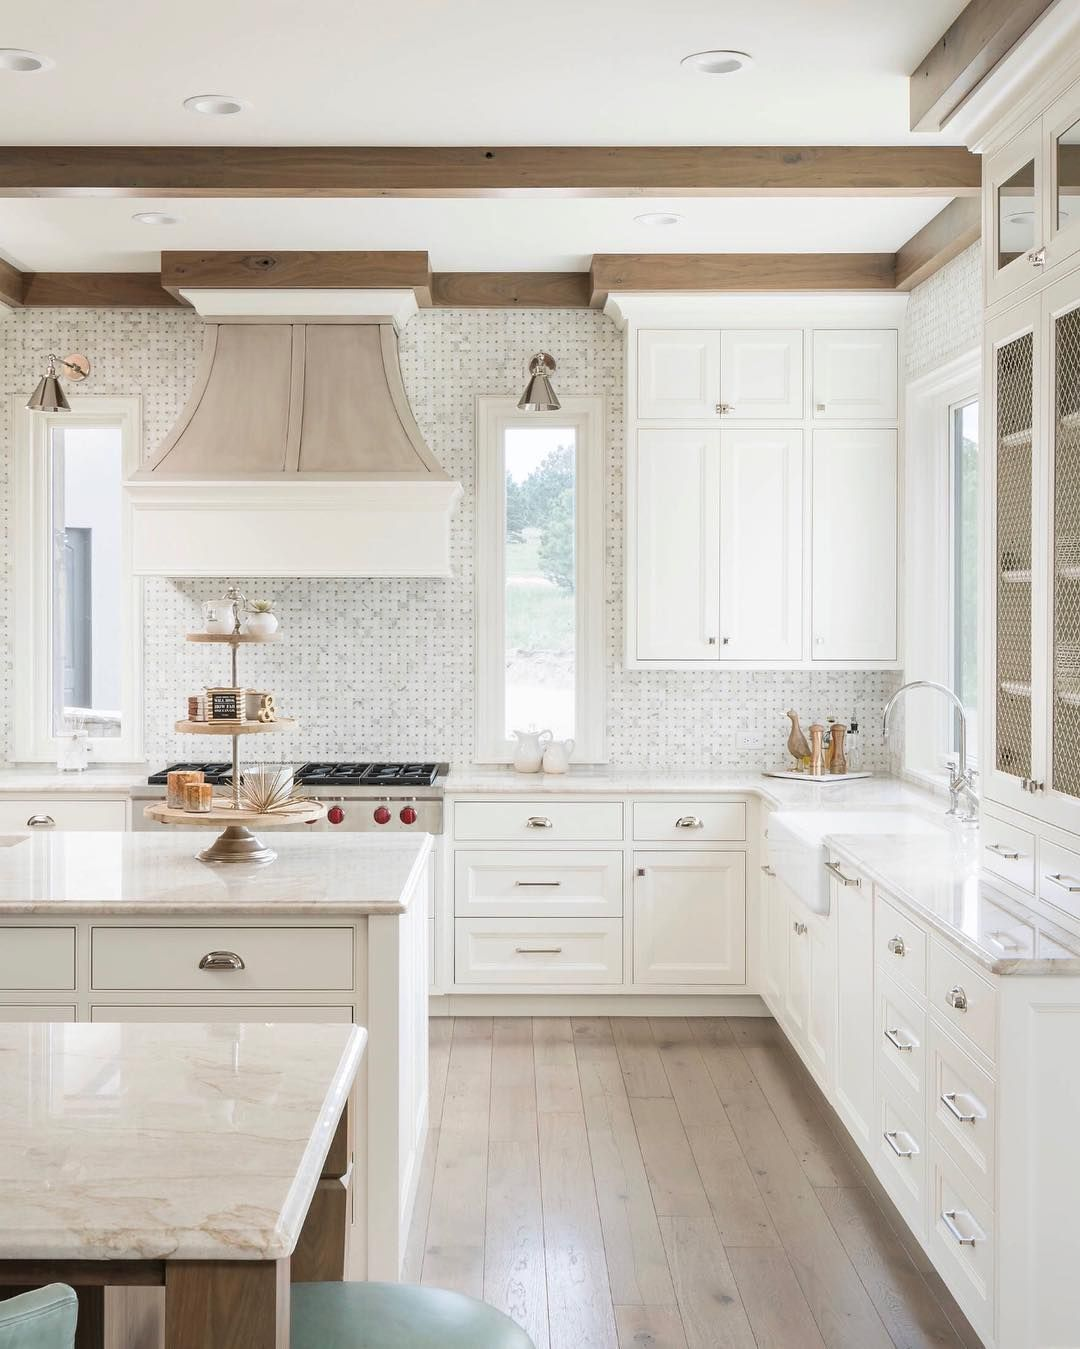 Interior Design Home Decor On Instagram Yes Please By Lost Creek Construction Location Colorado Product Discl Kitchen Design Open Home Home Kitchens Home kitchen interior design